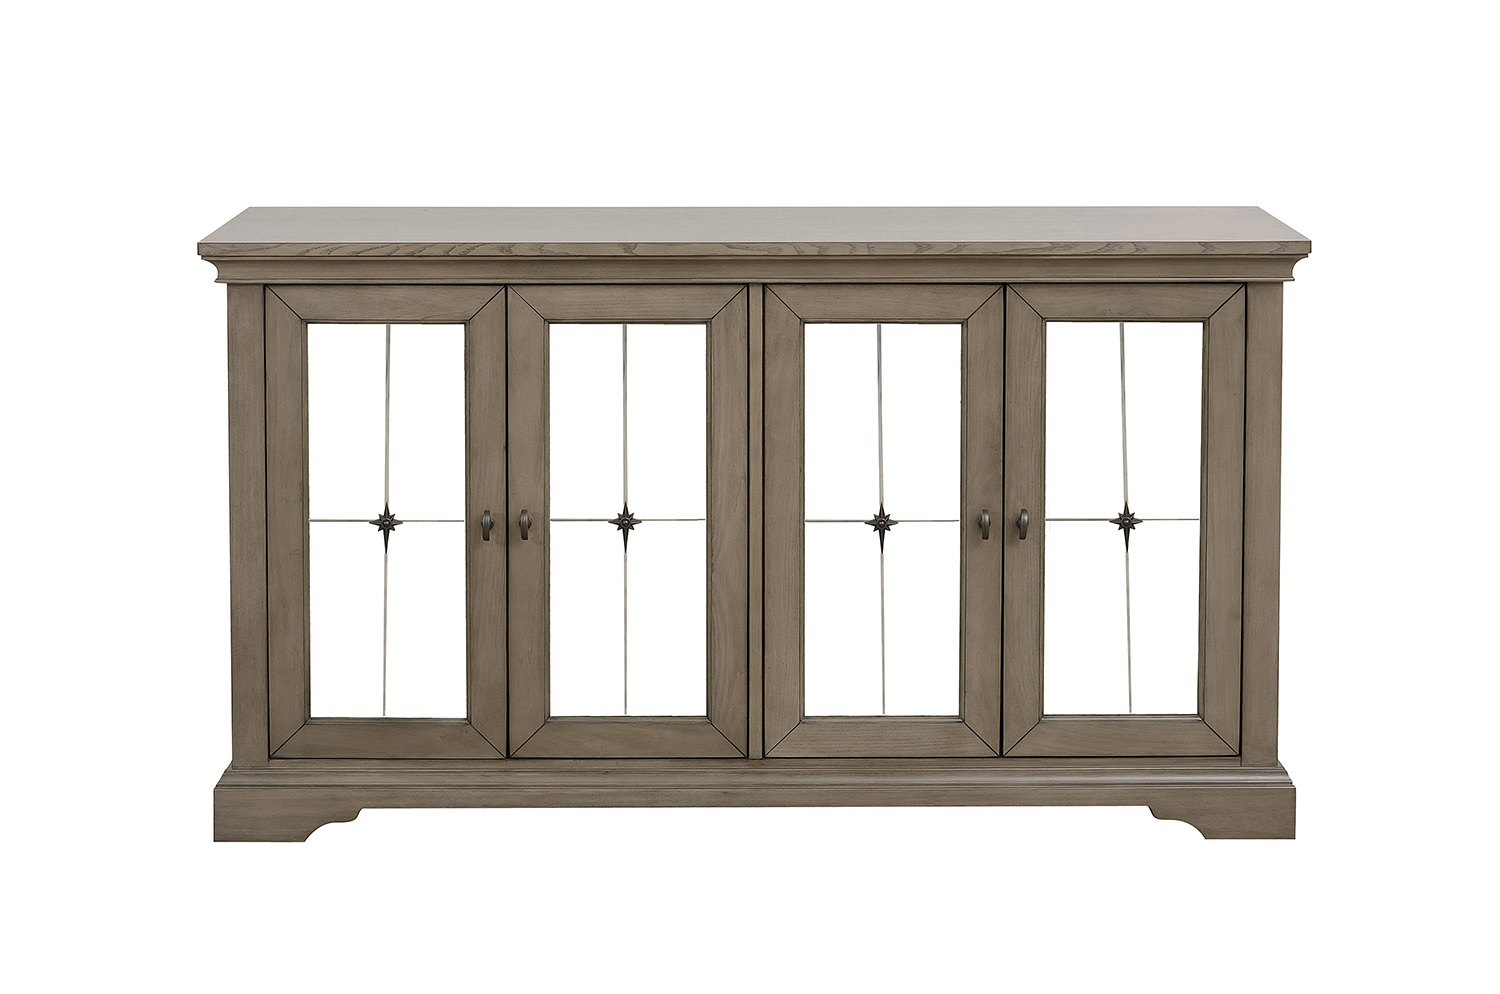 Homelegance Vermillion Server with Mirrored Door - Bisque